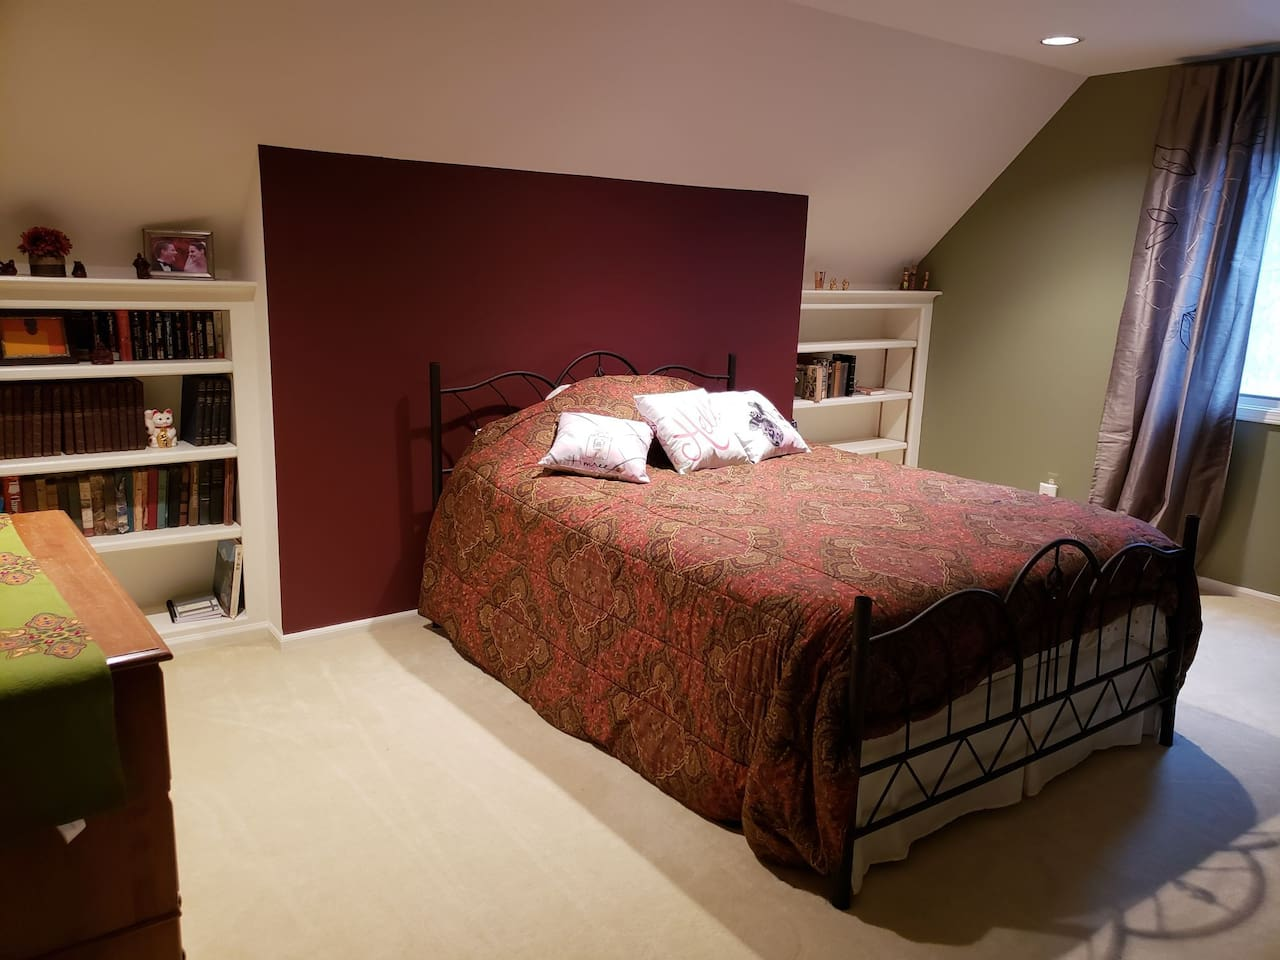 Welcome home to a super comfy queen size bed with a seasonally selected comforter, extra pillows, and blankets!